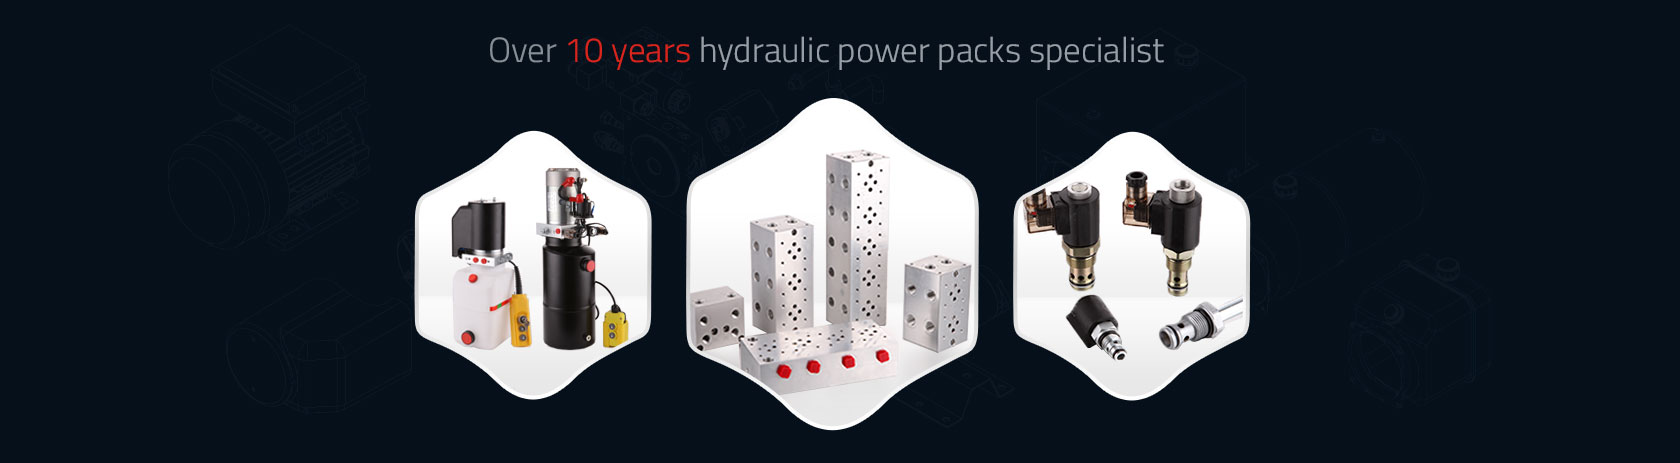 hydraulic power pack manufacturers